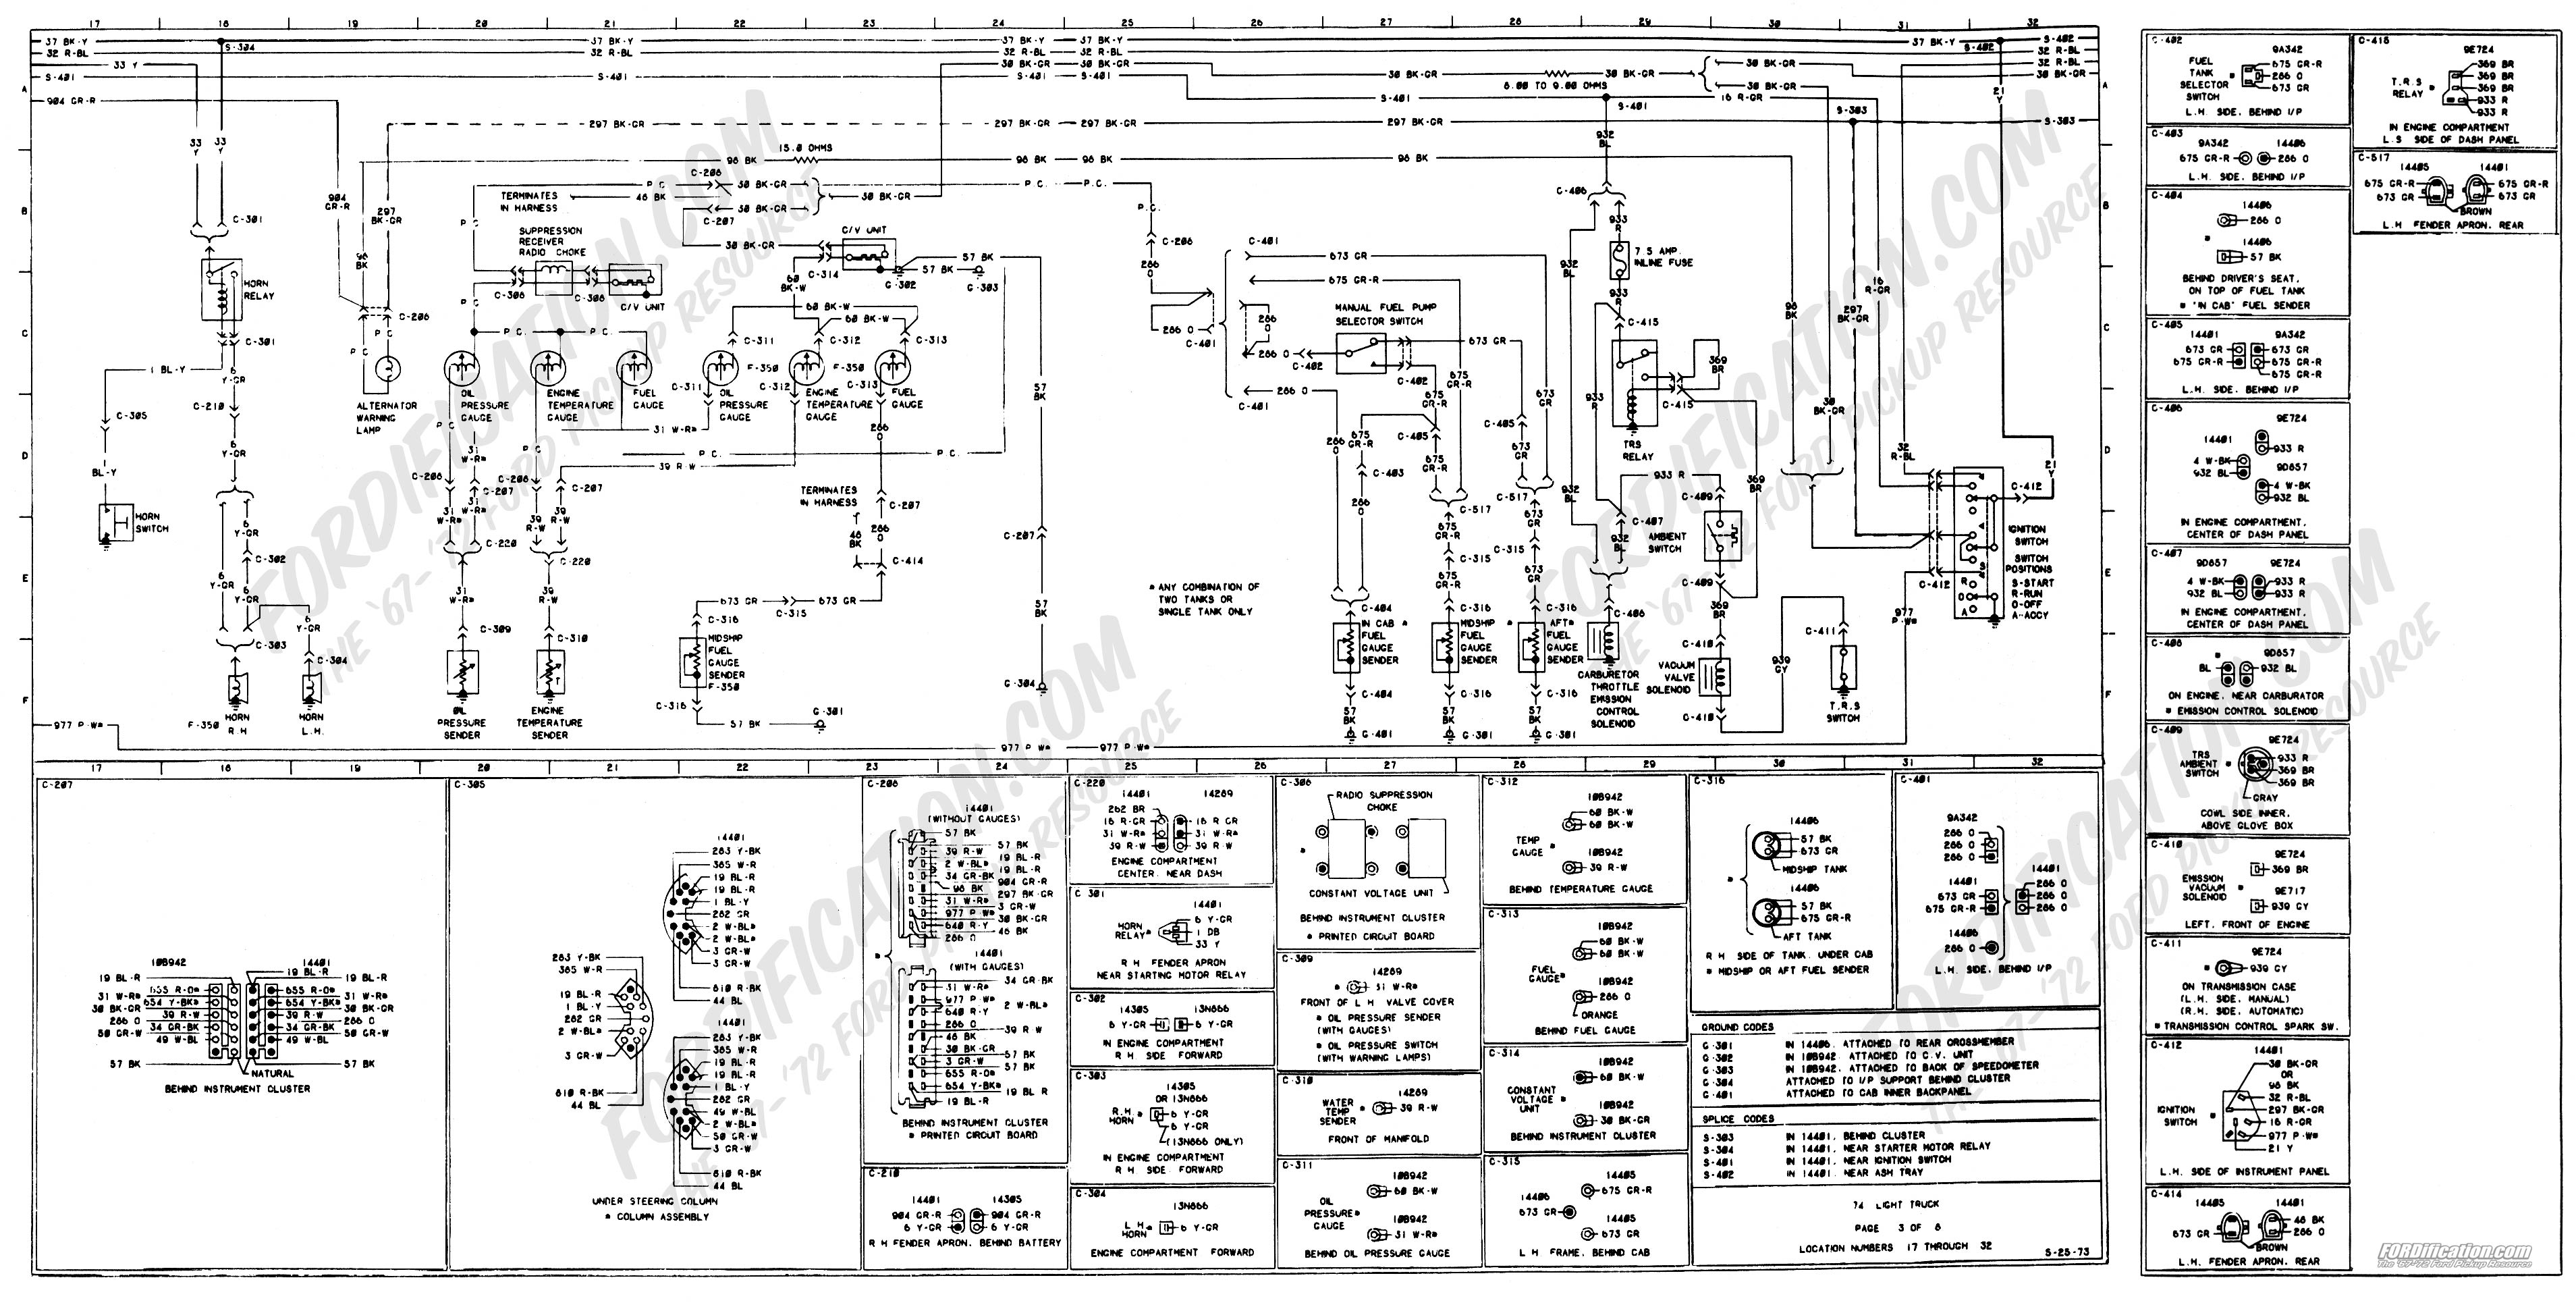 F250 Wiring Diagrams Library Ford Festiva Ignition Diagram Free Download Page 03